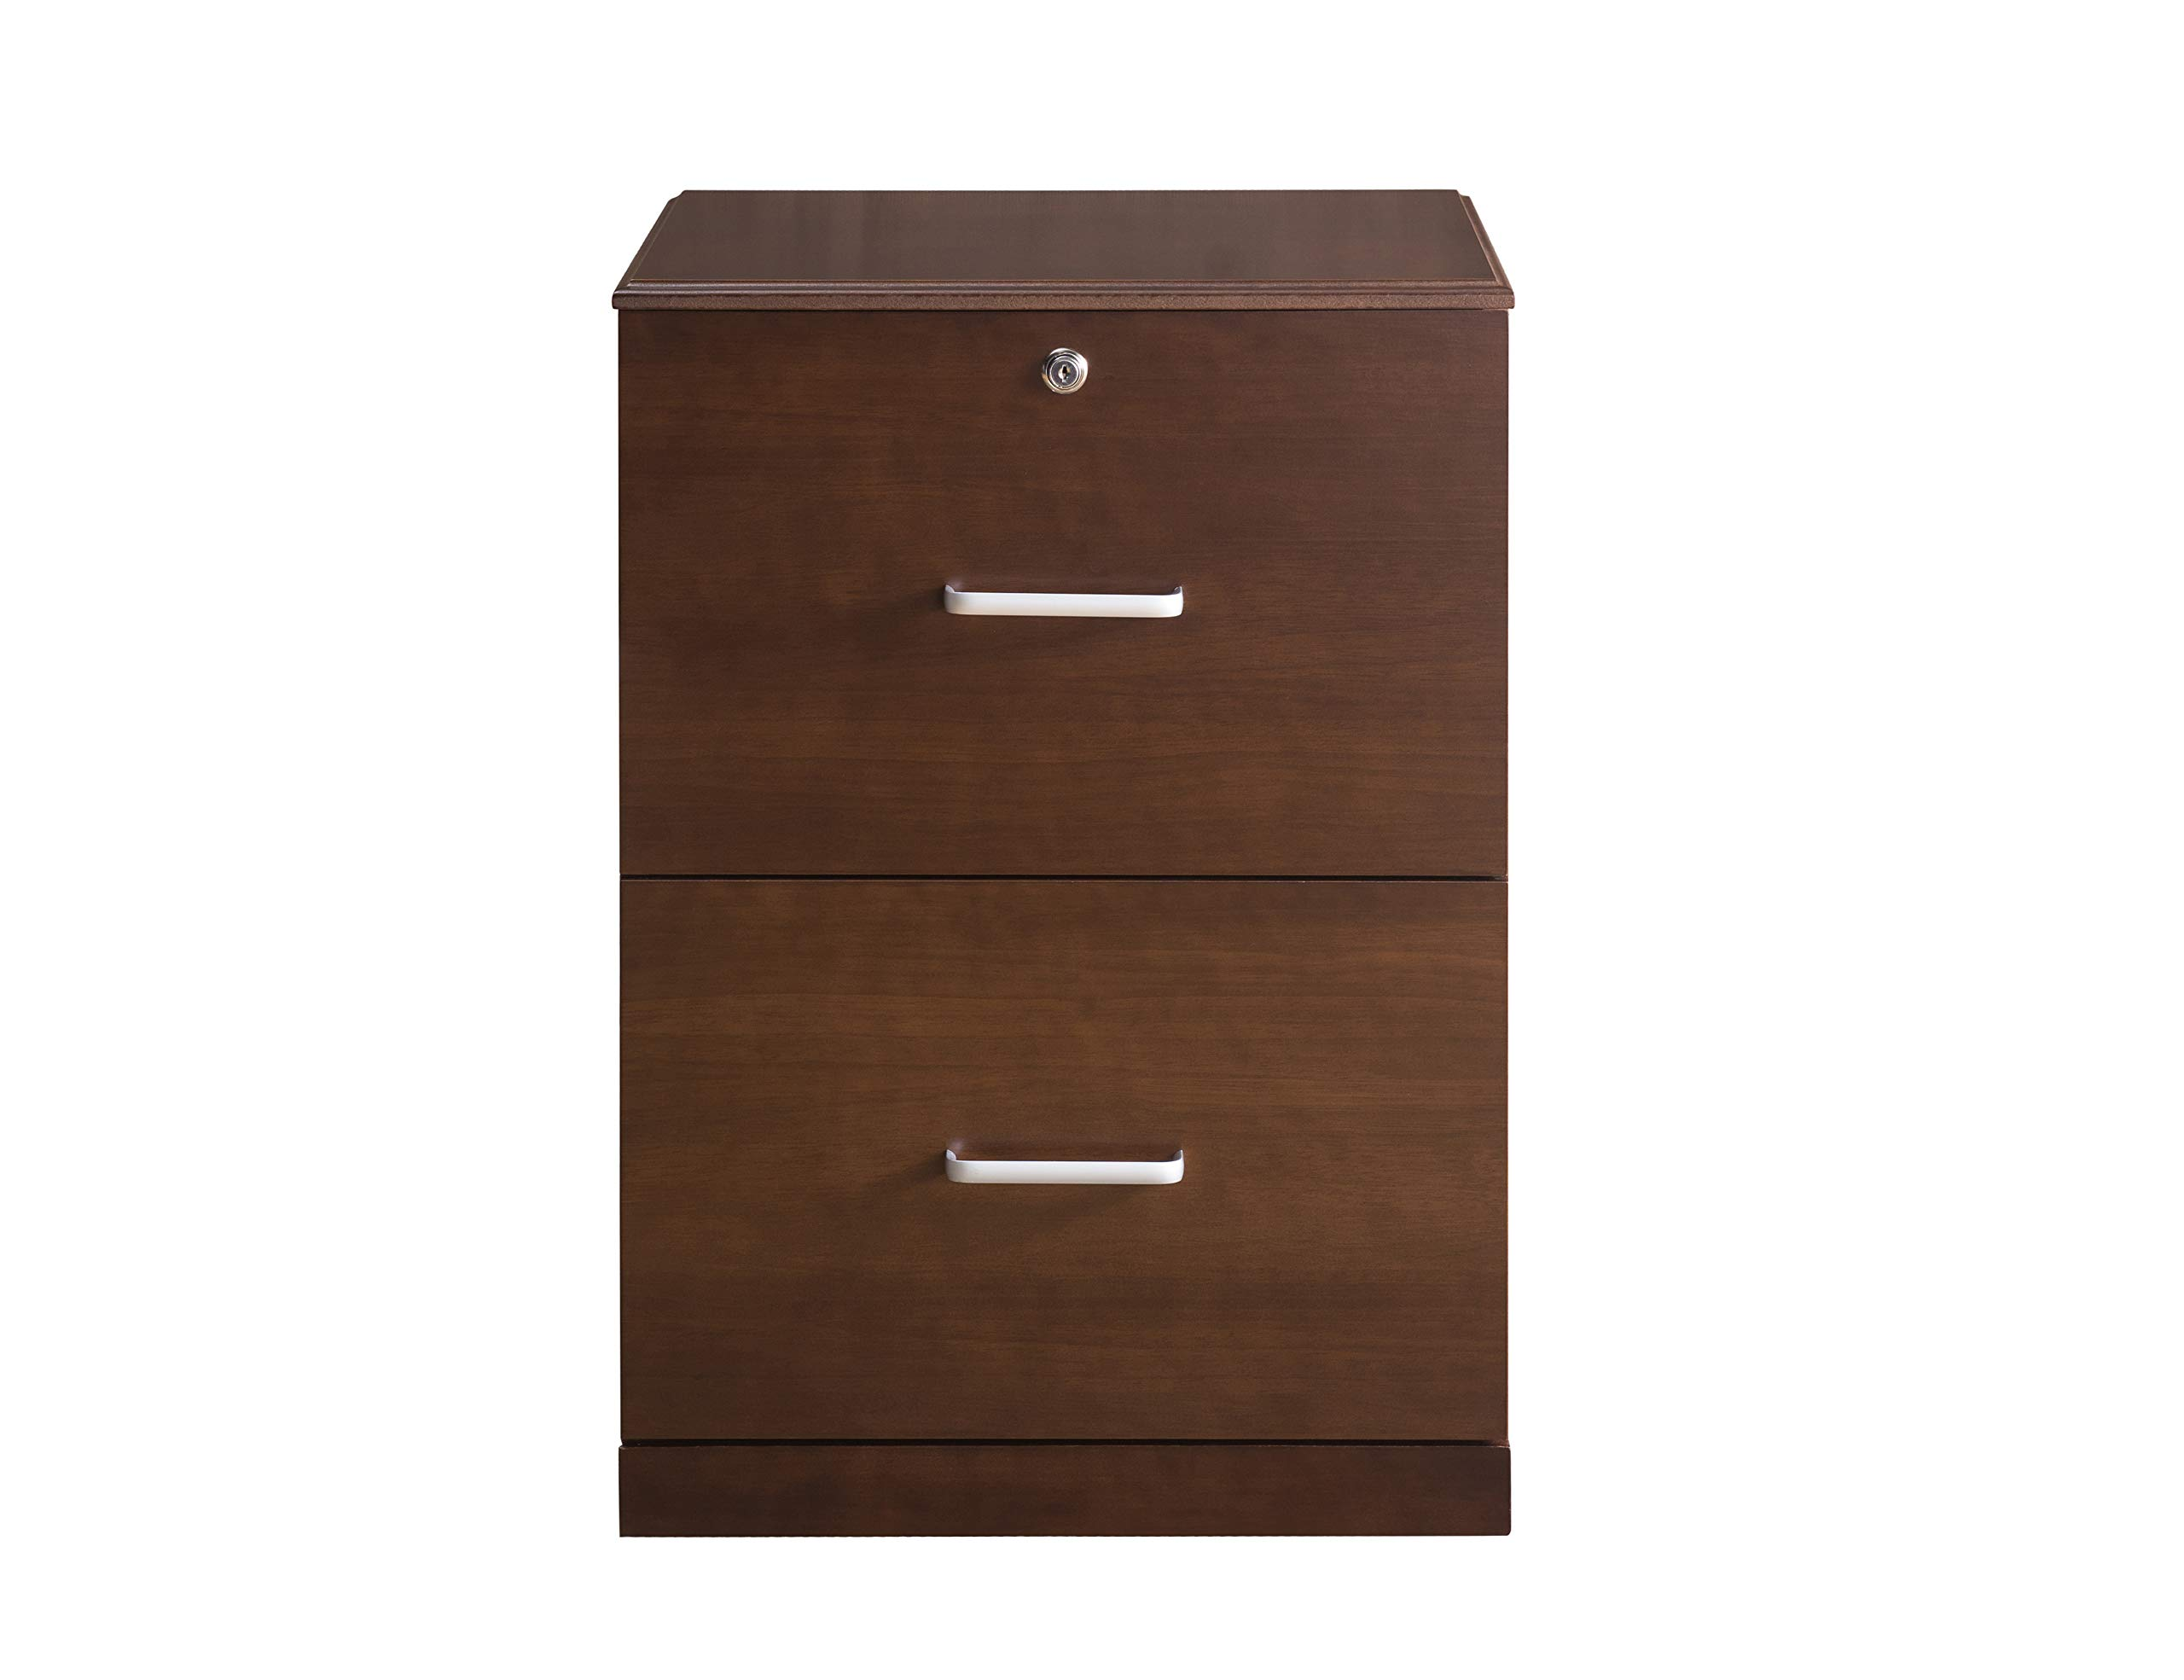 2L Lifestyle Henley File Cabinet, Brown by 2L Lifestyle (Image #4)